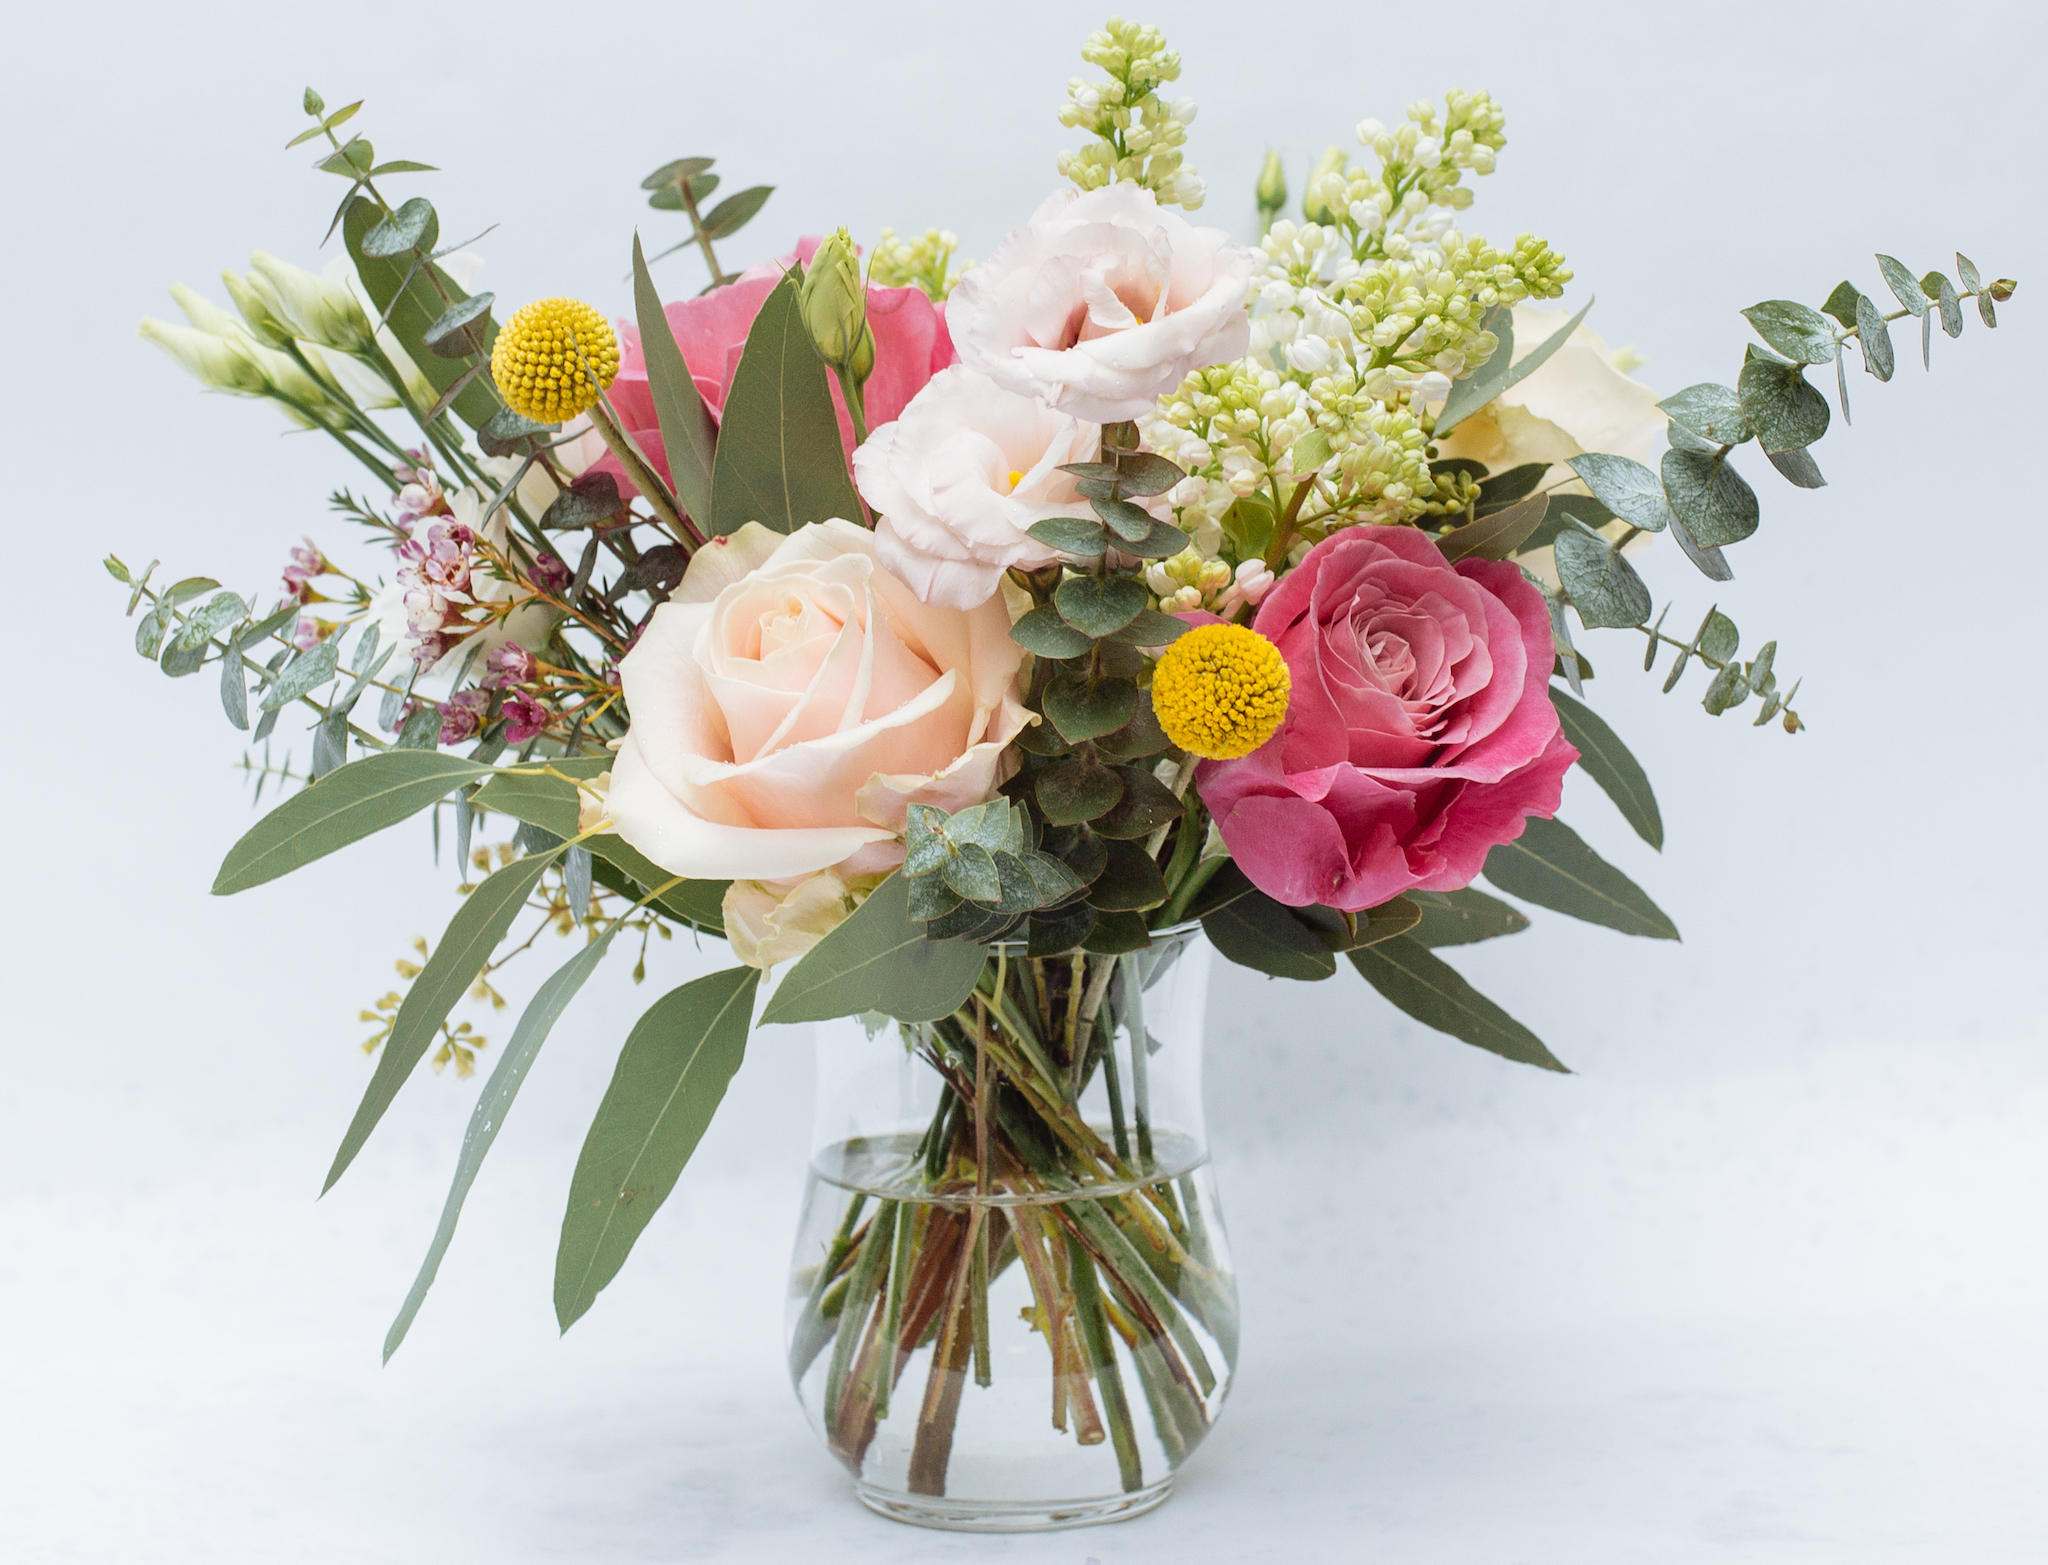 15 online florists for flower deliveries in london right now floor flowers izmirmasajfo